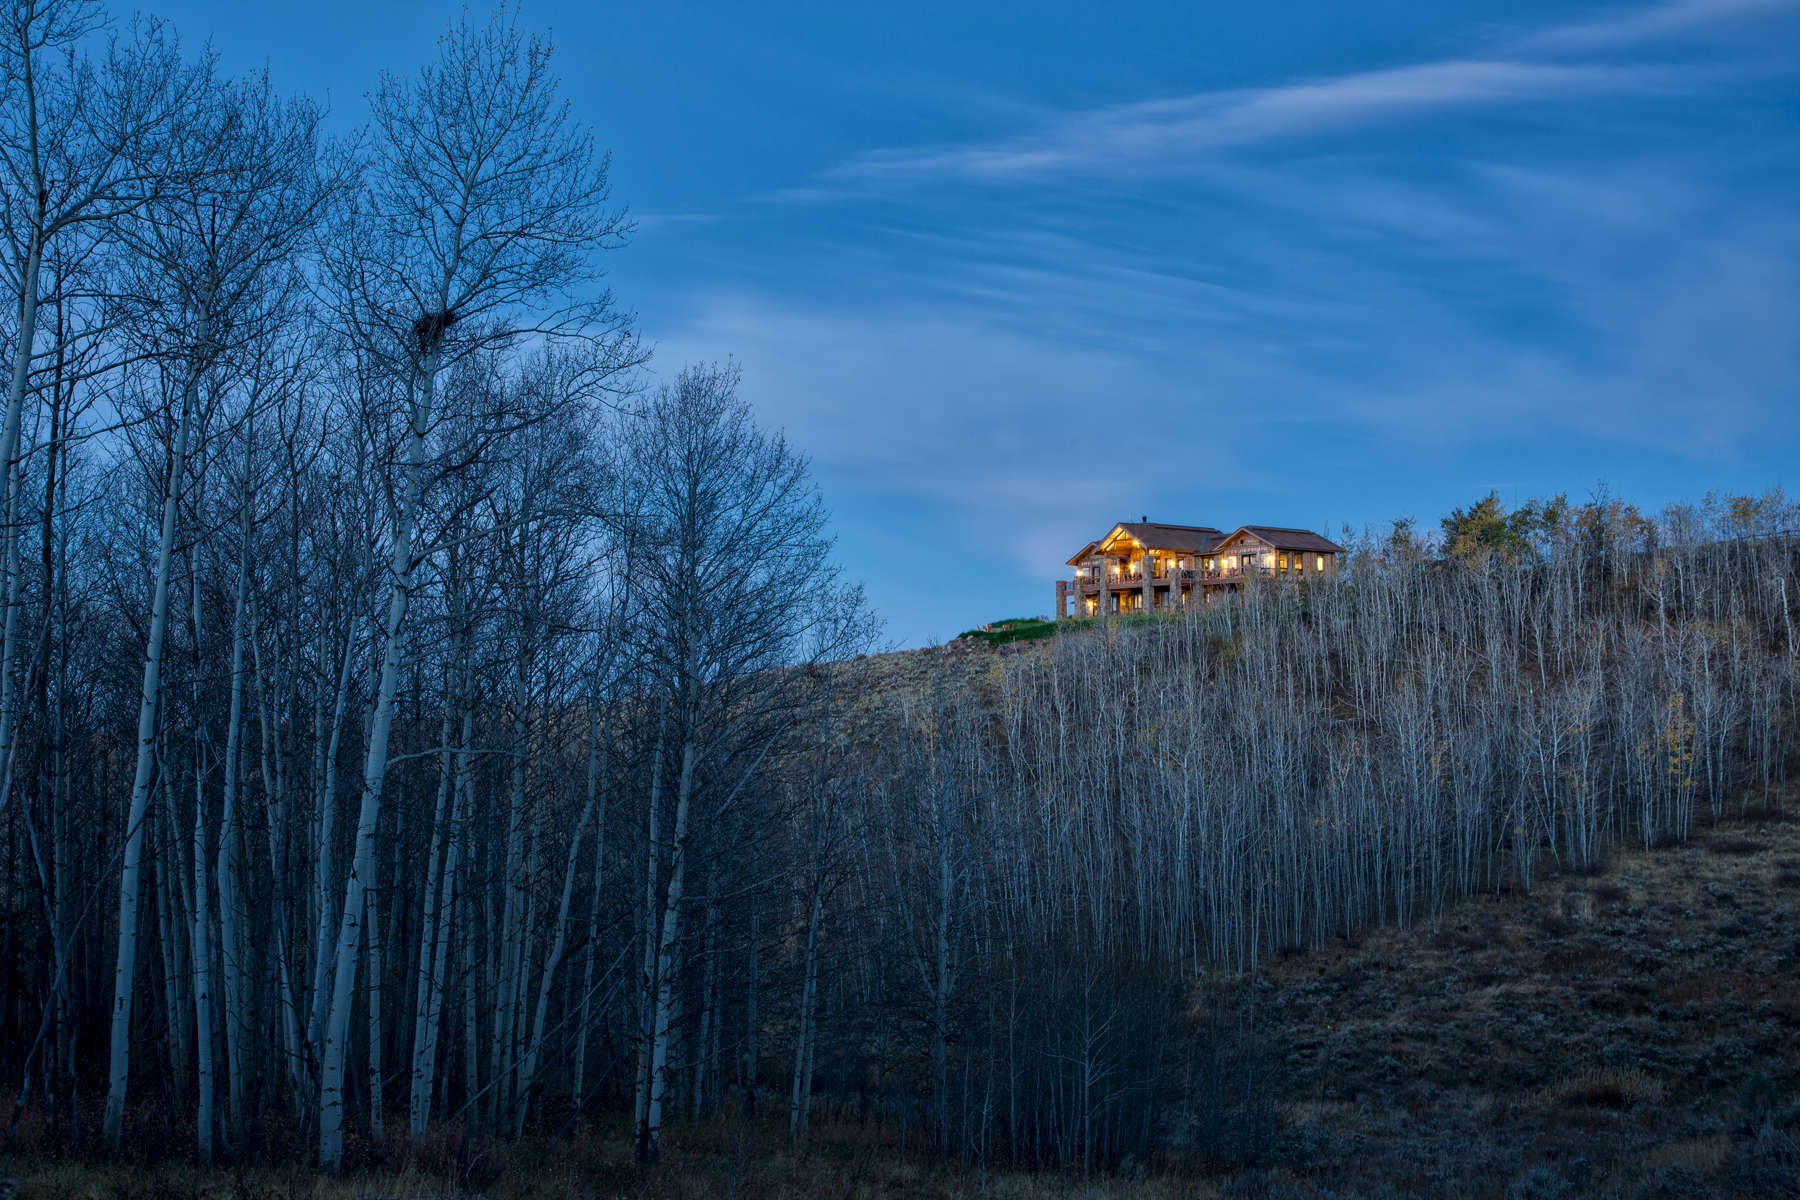 This is a long distance photograph of a private residence of a rustic home positioned on a ridgeline at dawn. The home radiates a warm orange glow and is framed by trees that have lost their leaves due to the time of year